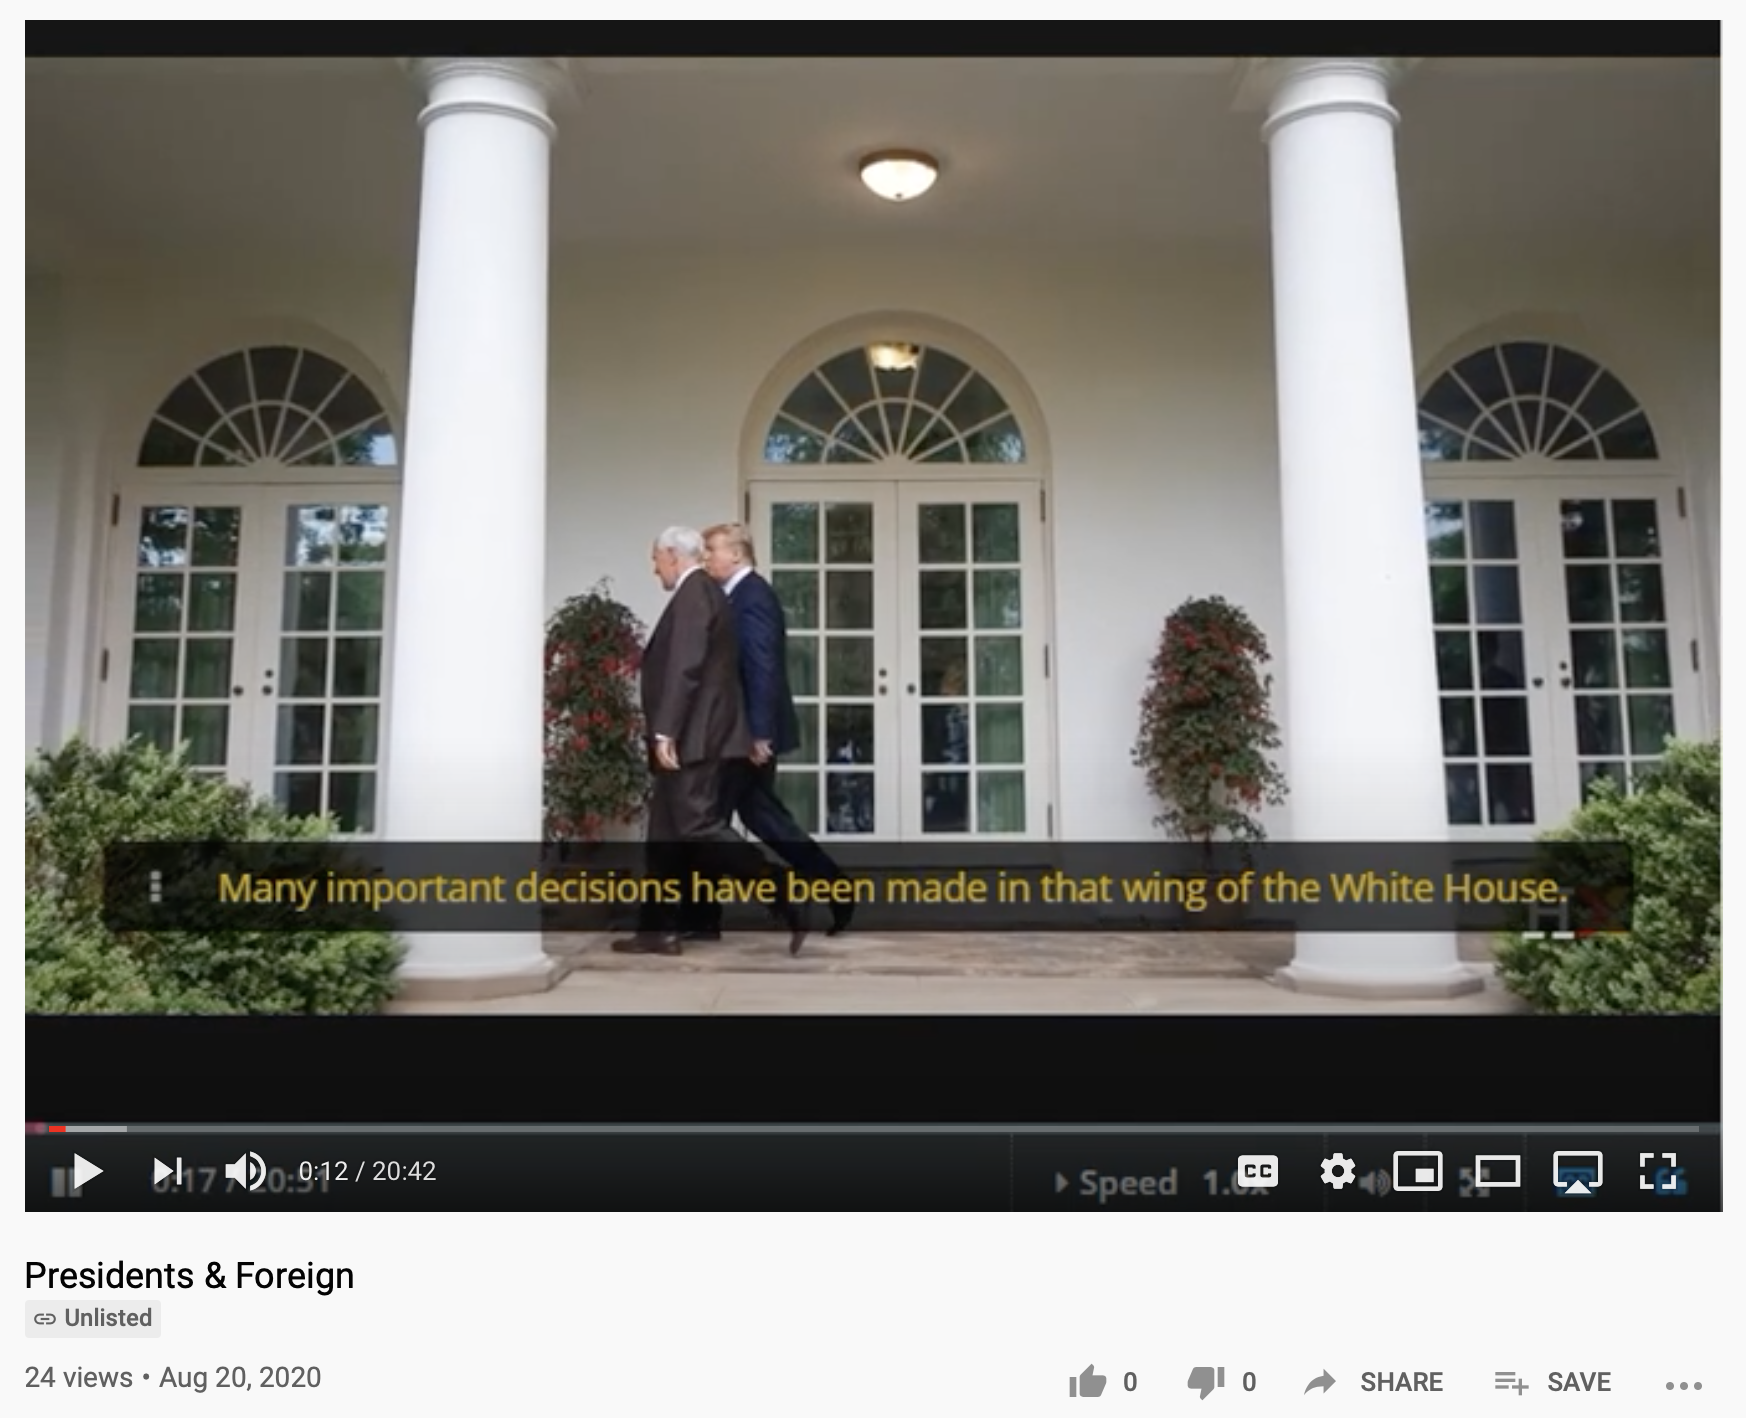 VIdeo lecture from Harvard professor, William Patterson, on Presidents & Foreign available on YouTube and his HarvardX/EdX page.